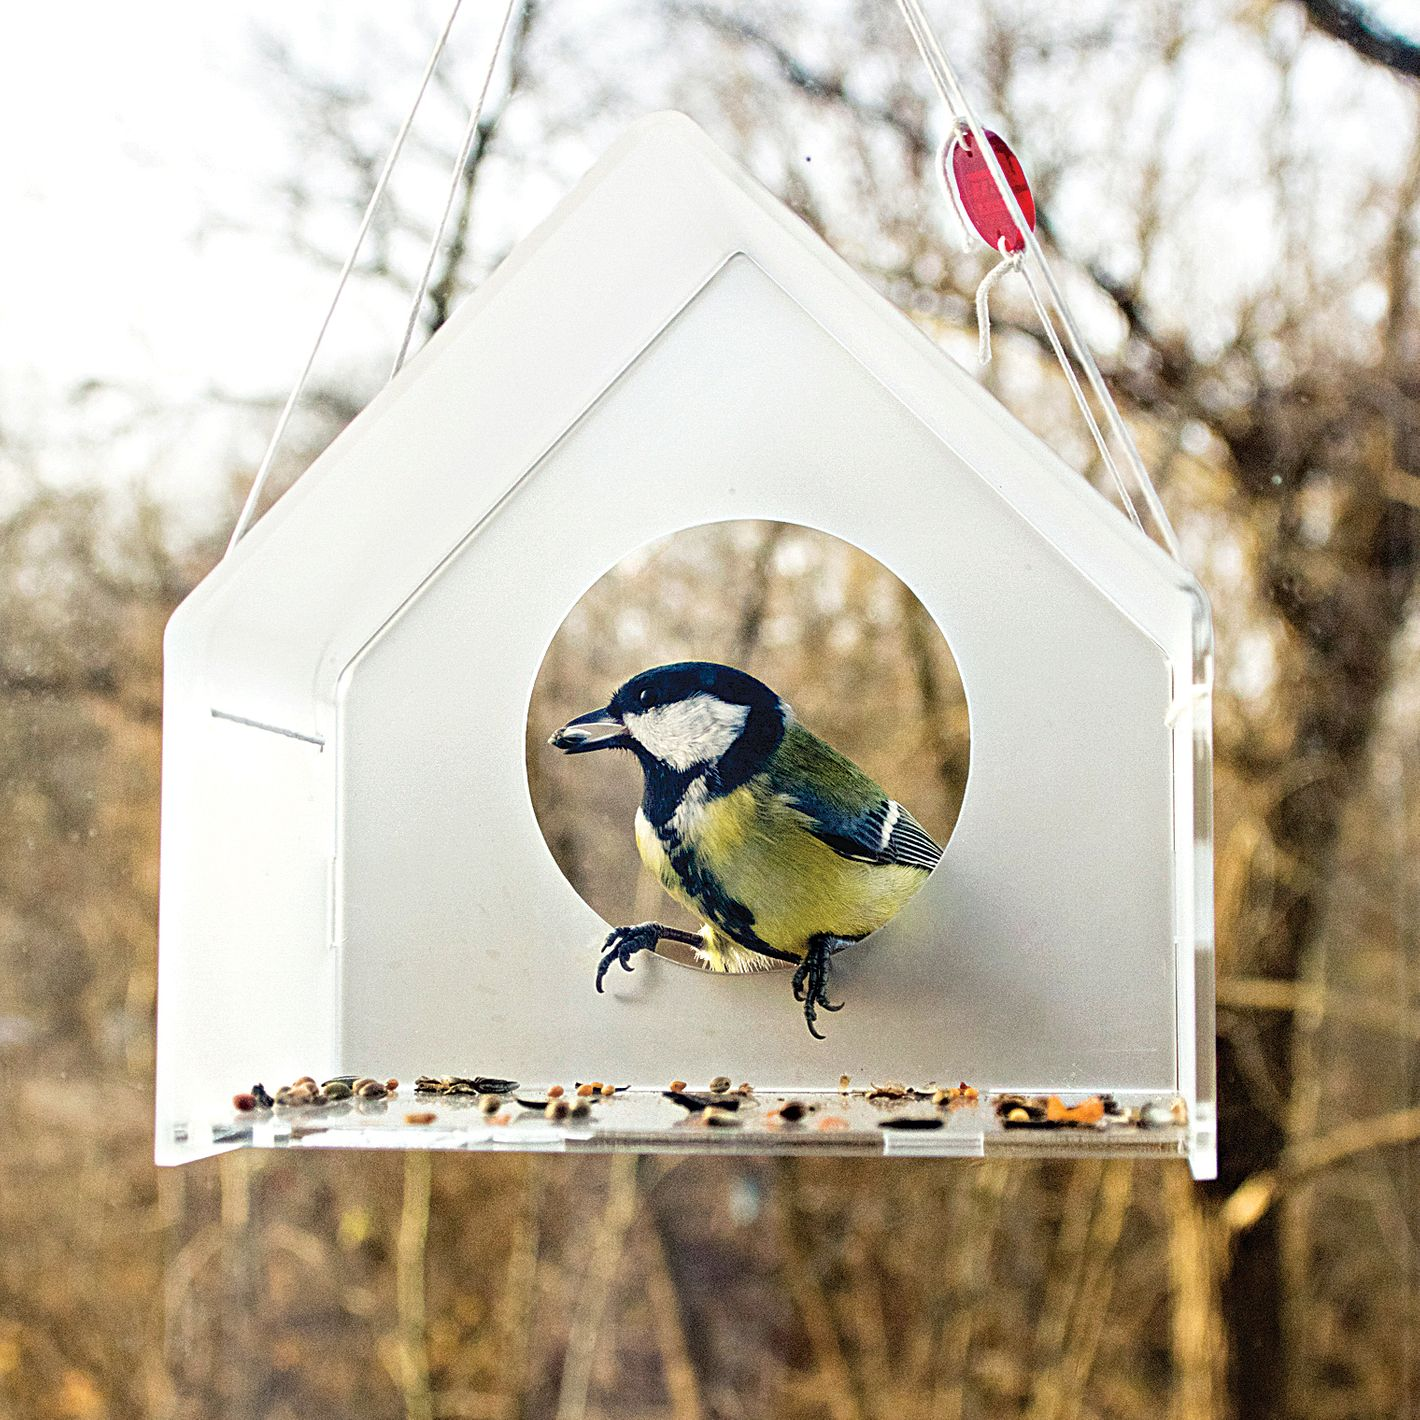 Modern Acrylic Bird Feeder by Uczarczyk